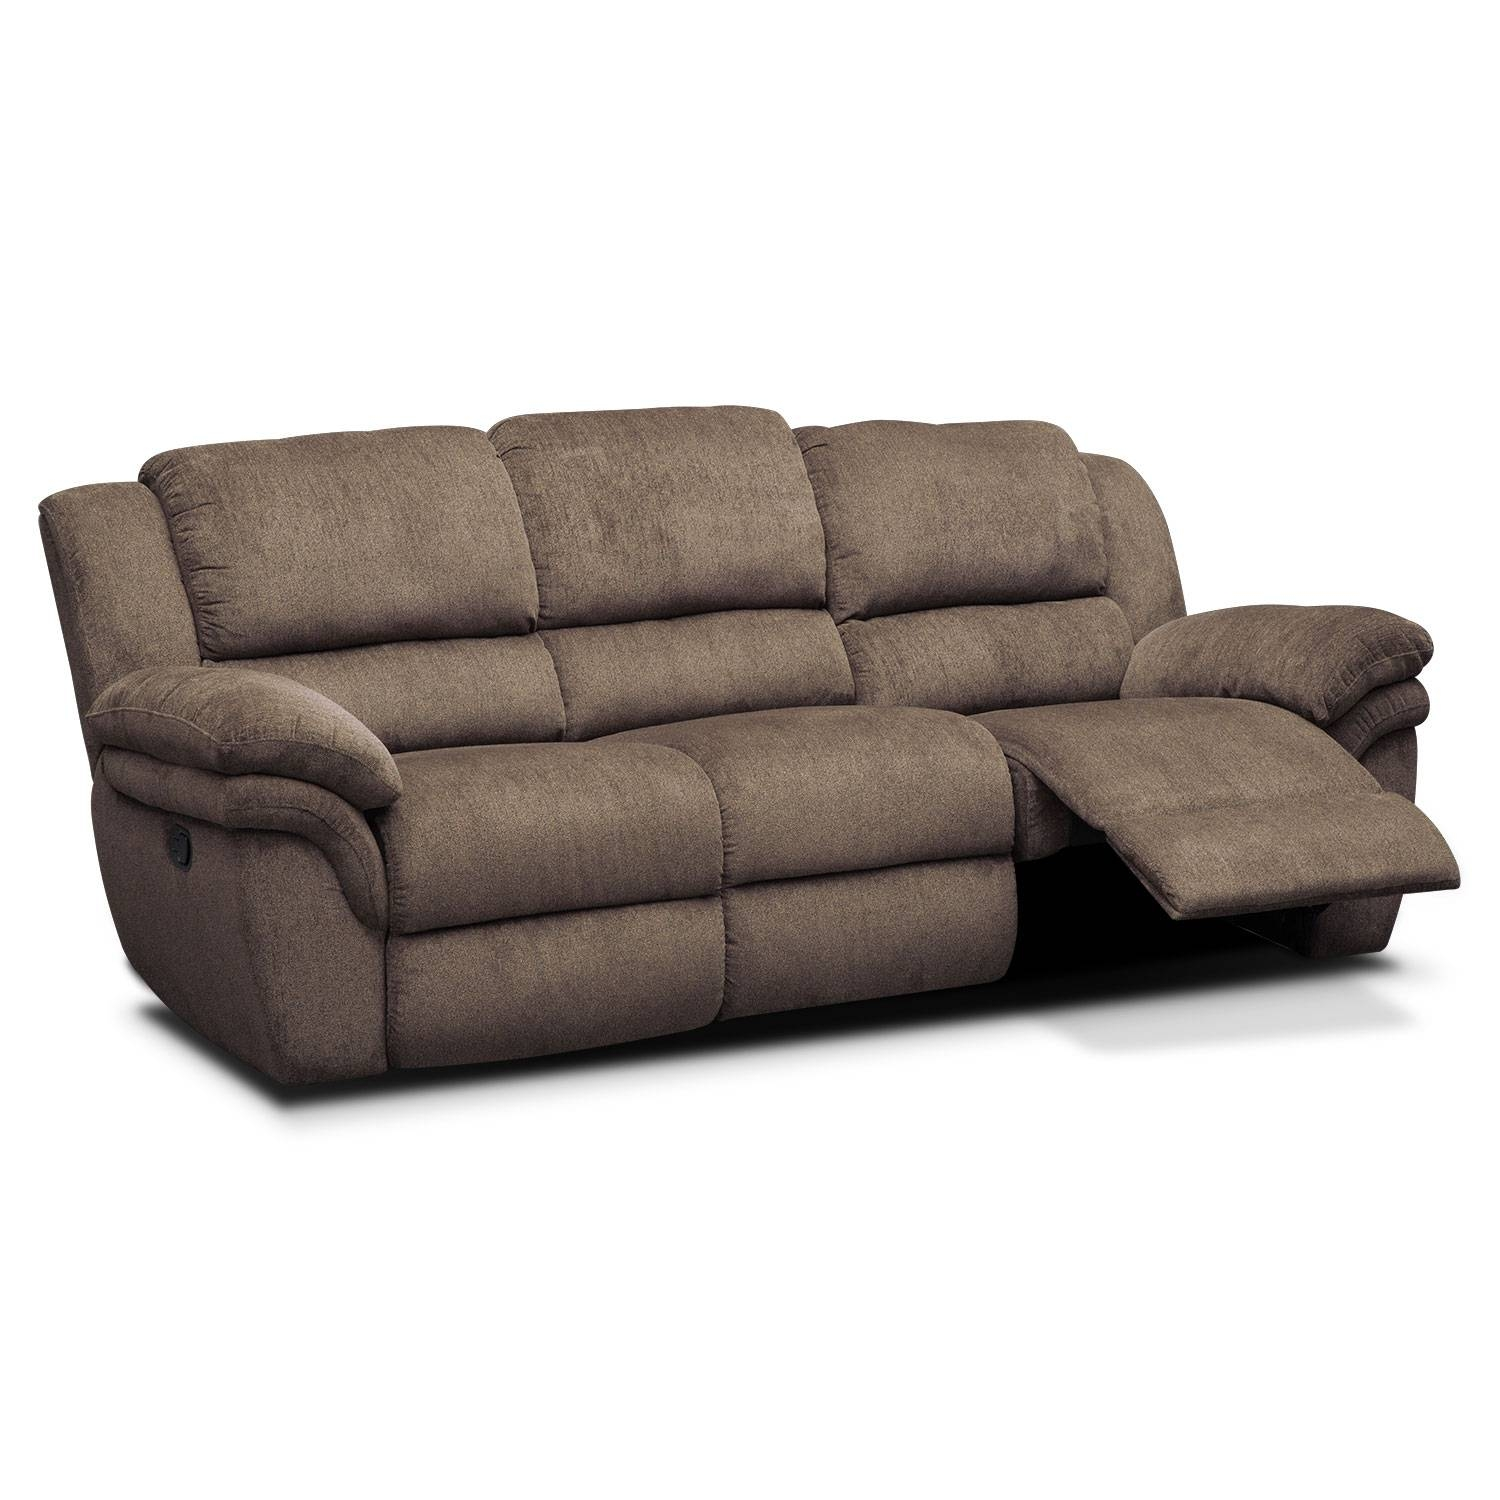 30 Best Ideas of Recliner Sofa Chairs